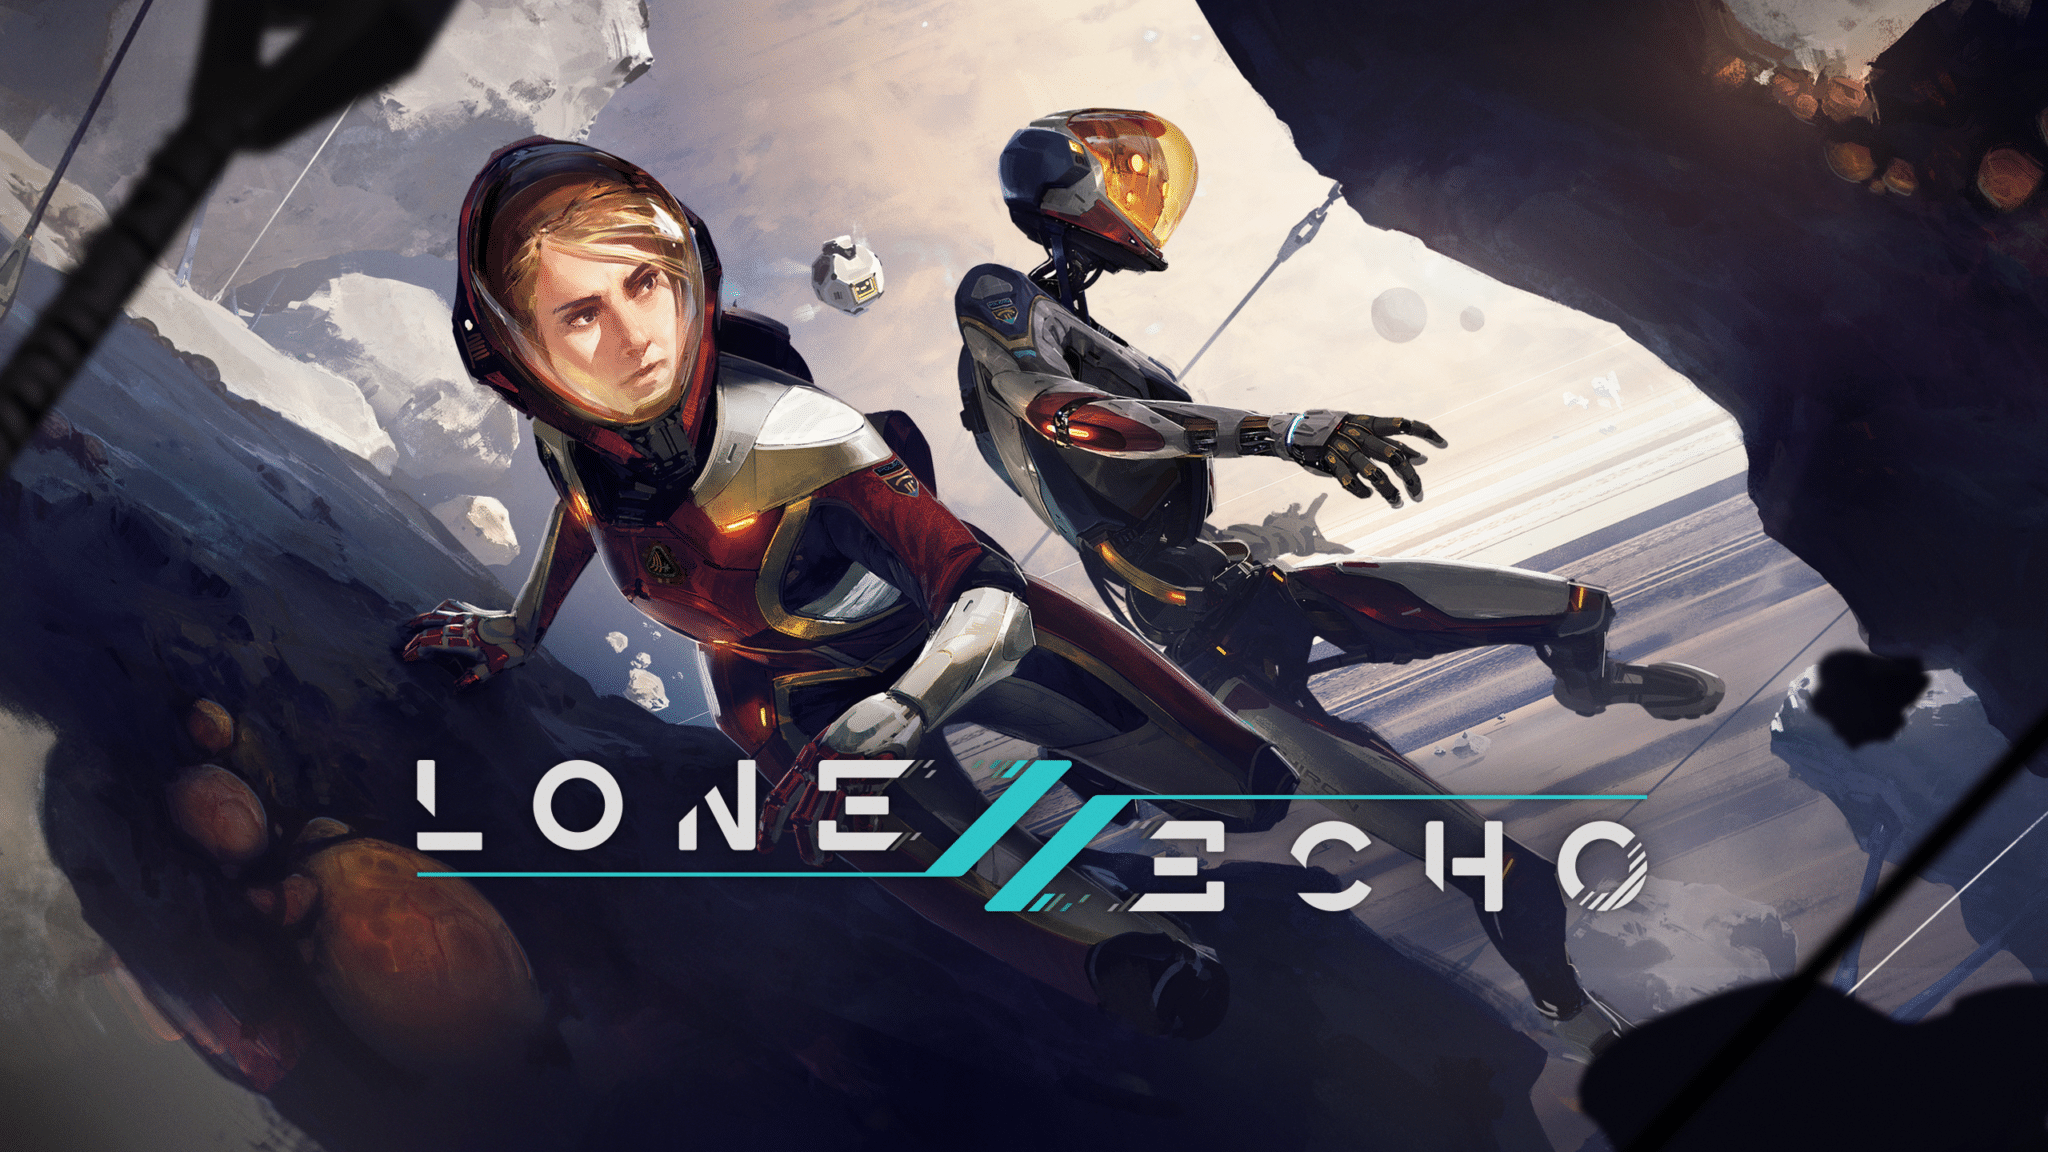 Lone Echo II Comes To Oculus Rift Store This Summer